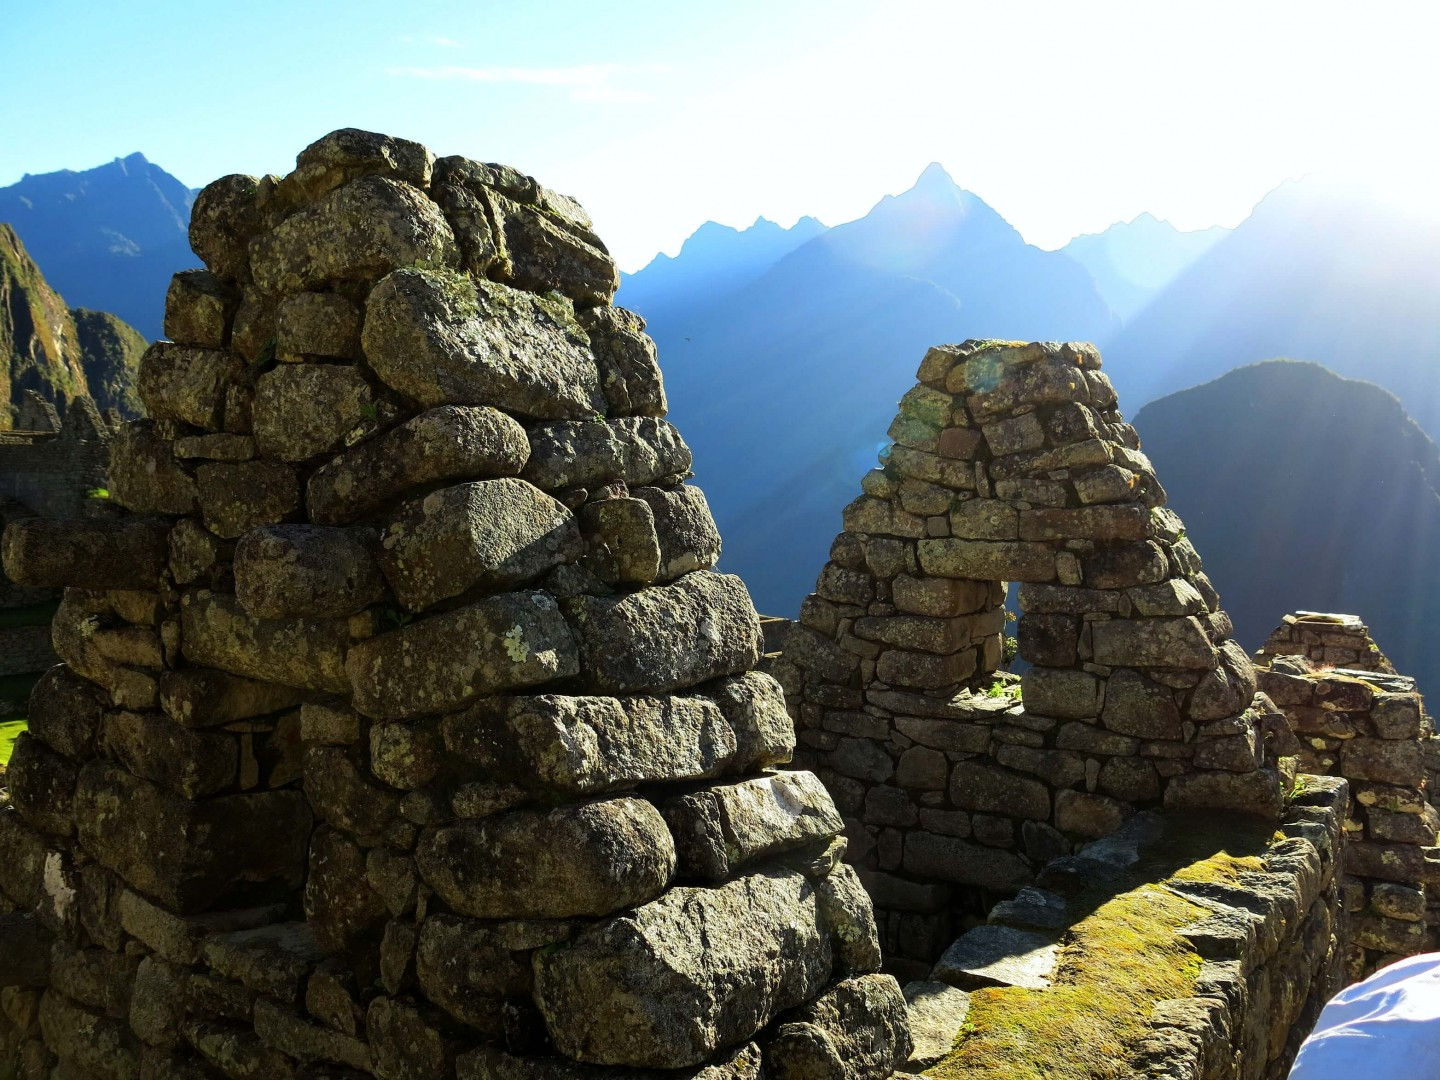 The sunrise over the Inca ruins at Machu Picchu, Peru.